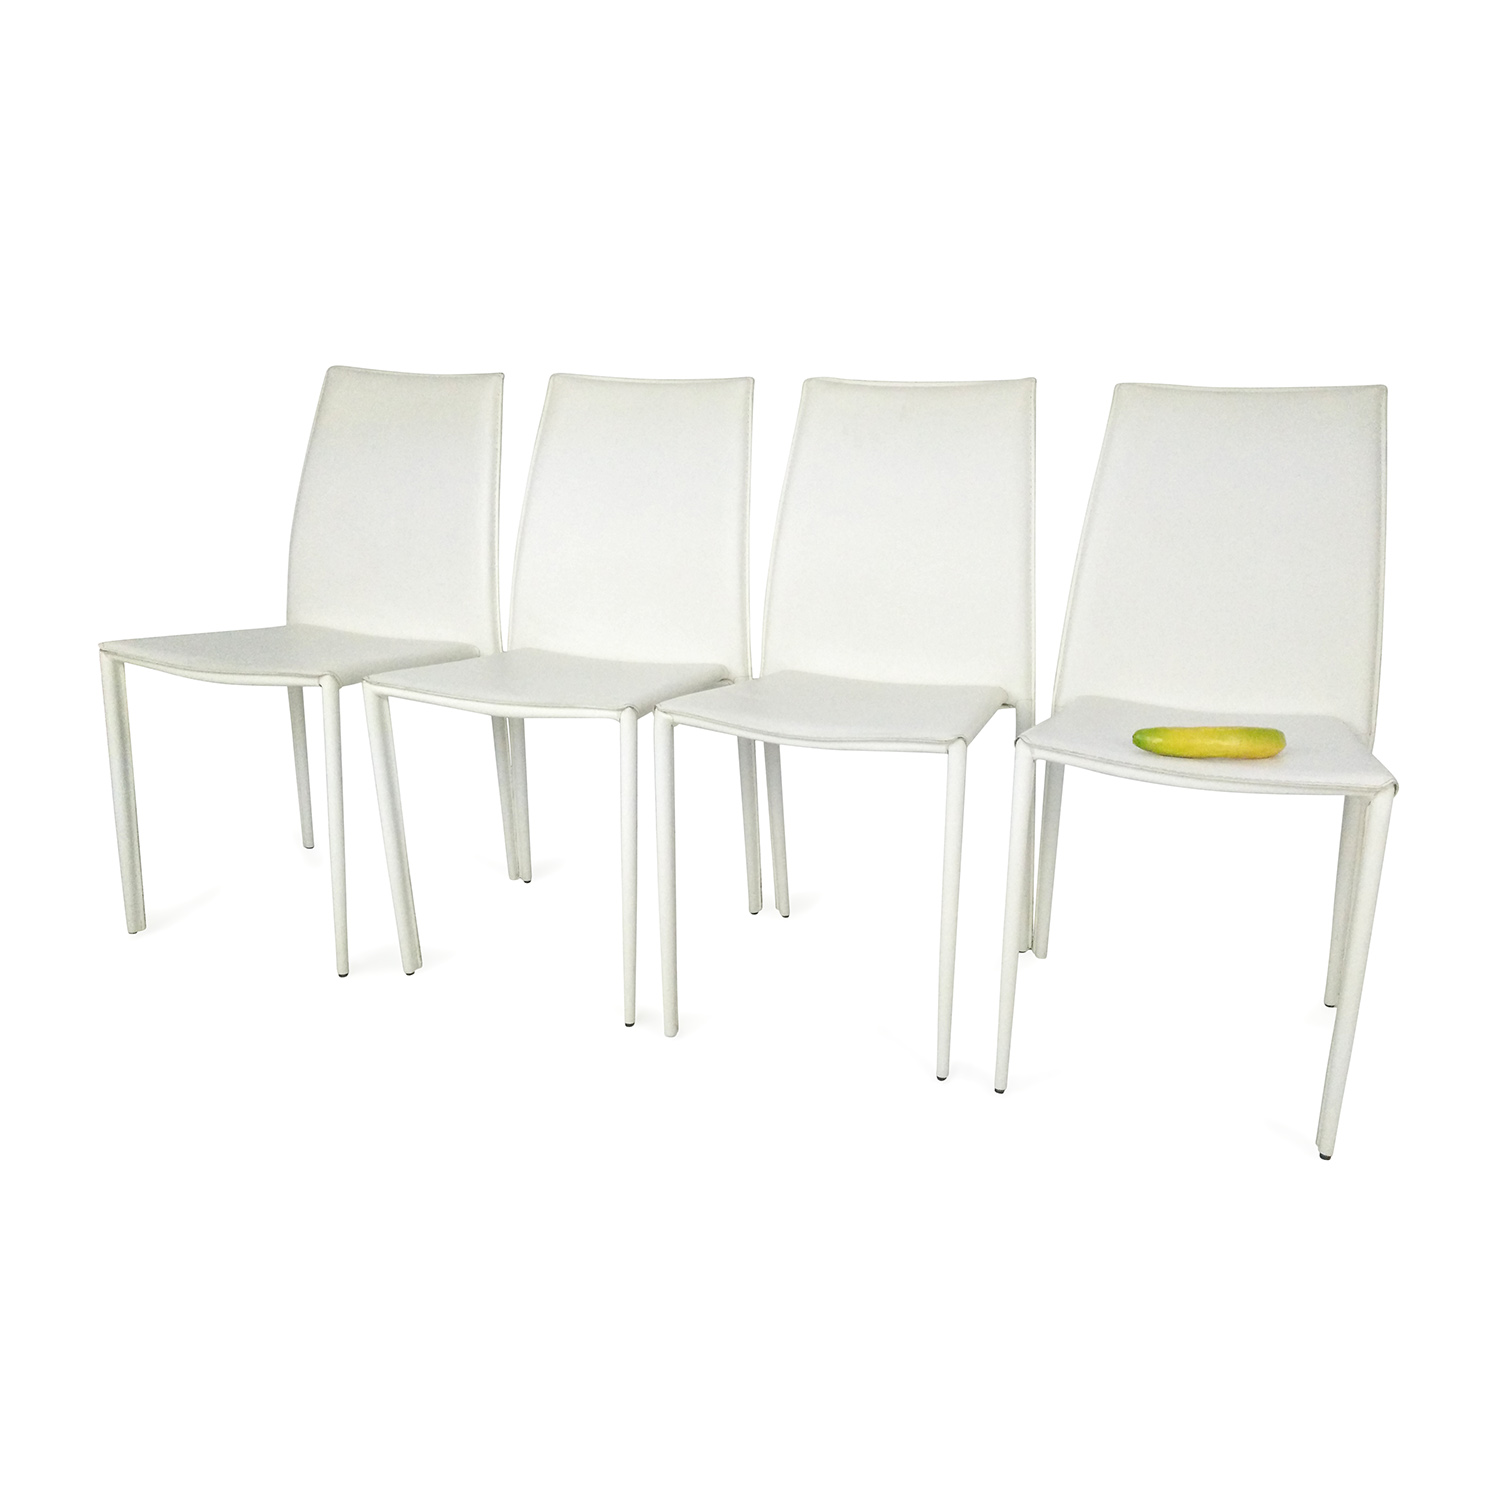 all modern all modern  dining chairs used .  off  all modern all modern  dining chairs  chairs